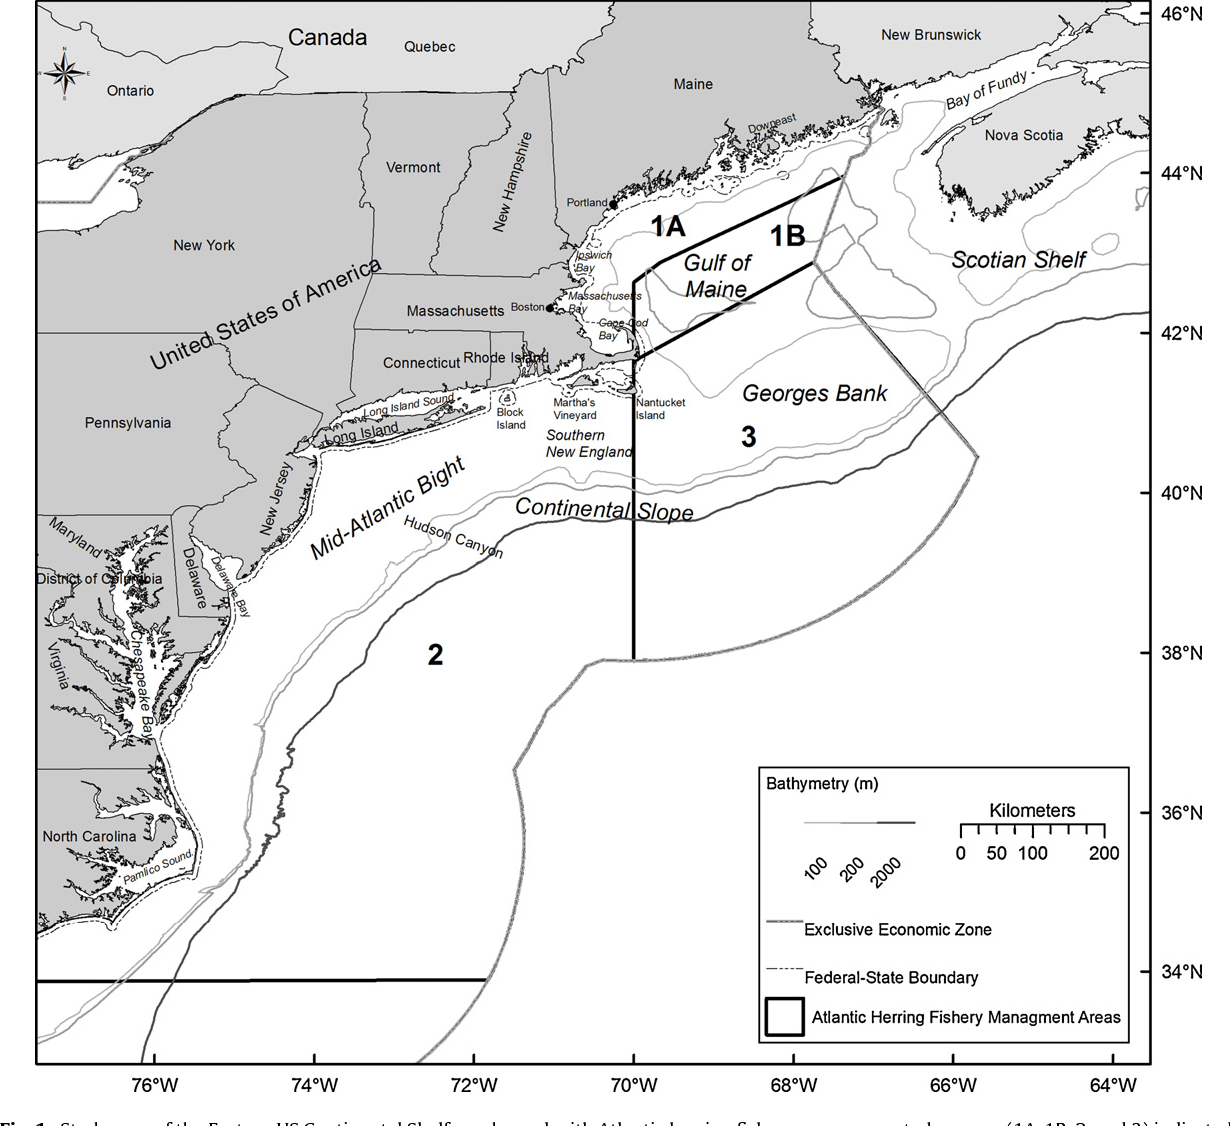 Spatial and temporal patterns of anadromous alosine bycatch in the